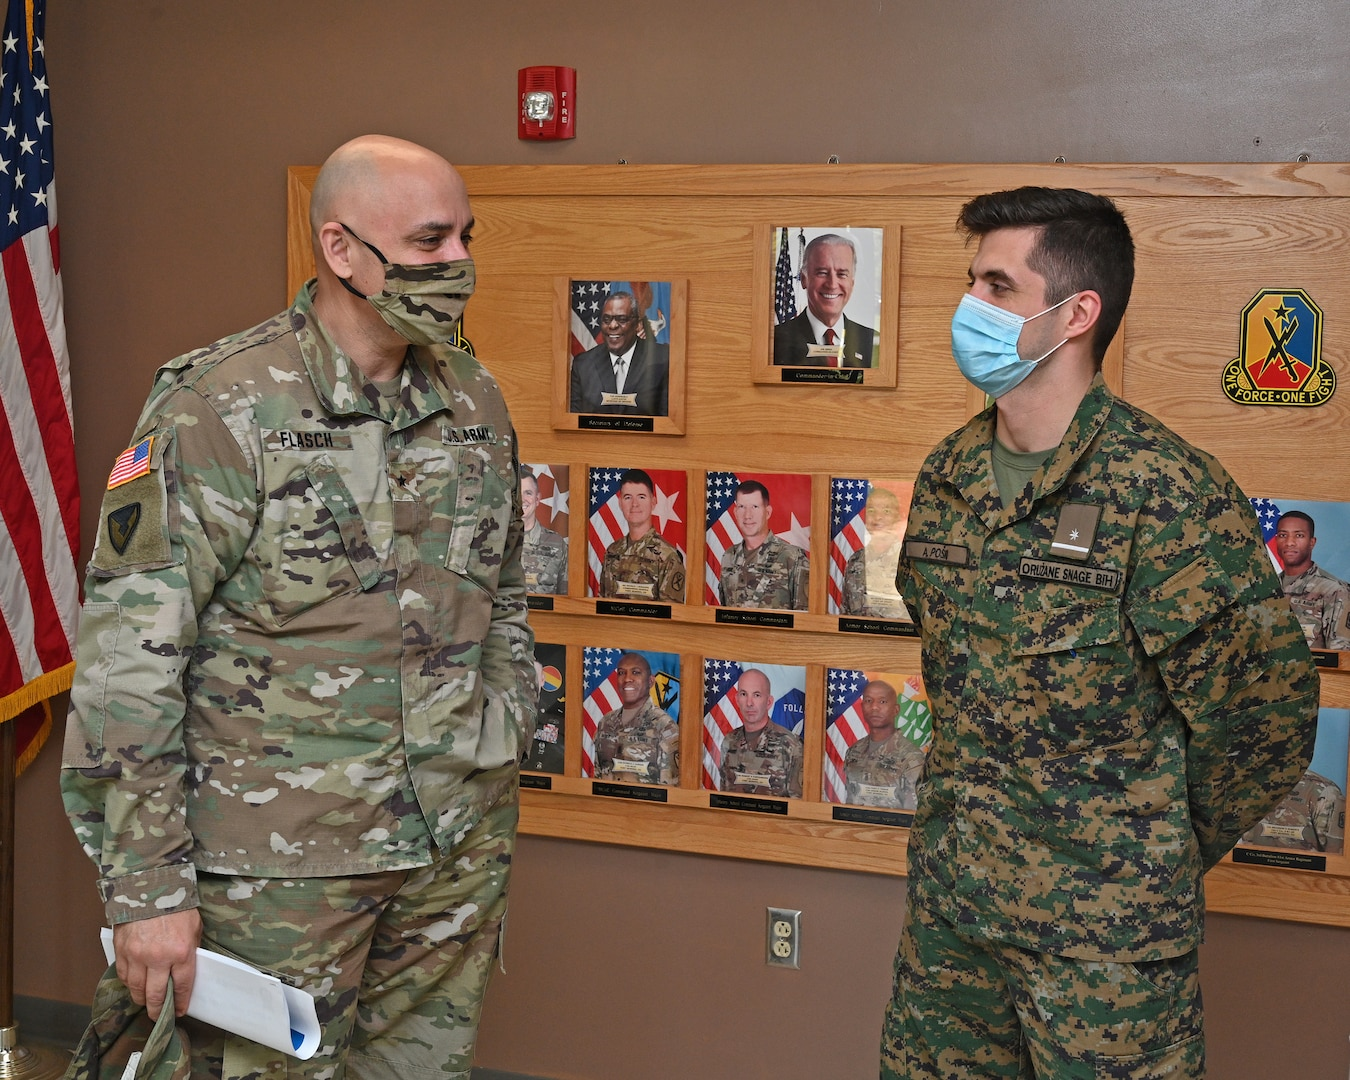 Brig. Gen. Adam Flasch, left, director of the joint staff for the Maryland National Guard, speaks with 2nd Lt. Adis Poško, Armed Forces of Bosnia-Herzegovina, at the Army Maneuver Center of Excellence at Fort Benning Army Base in Columbus, Ga., April 1, 2021. Flasch was visiting members of the Maryland National Guard and state partners from the Armed Forces of Bosnia-Herzegovina.